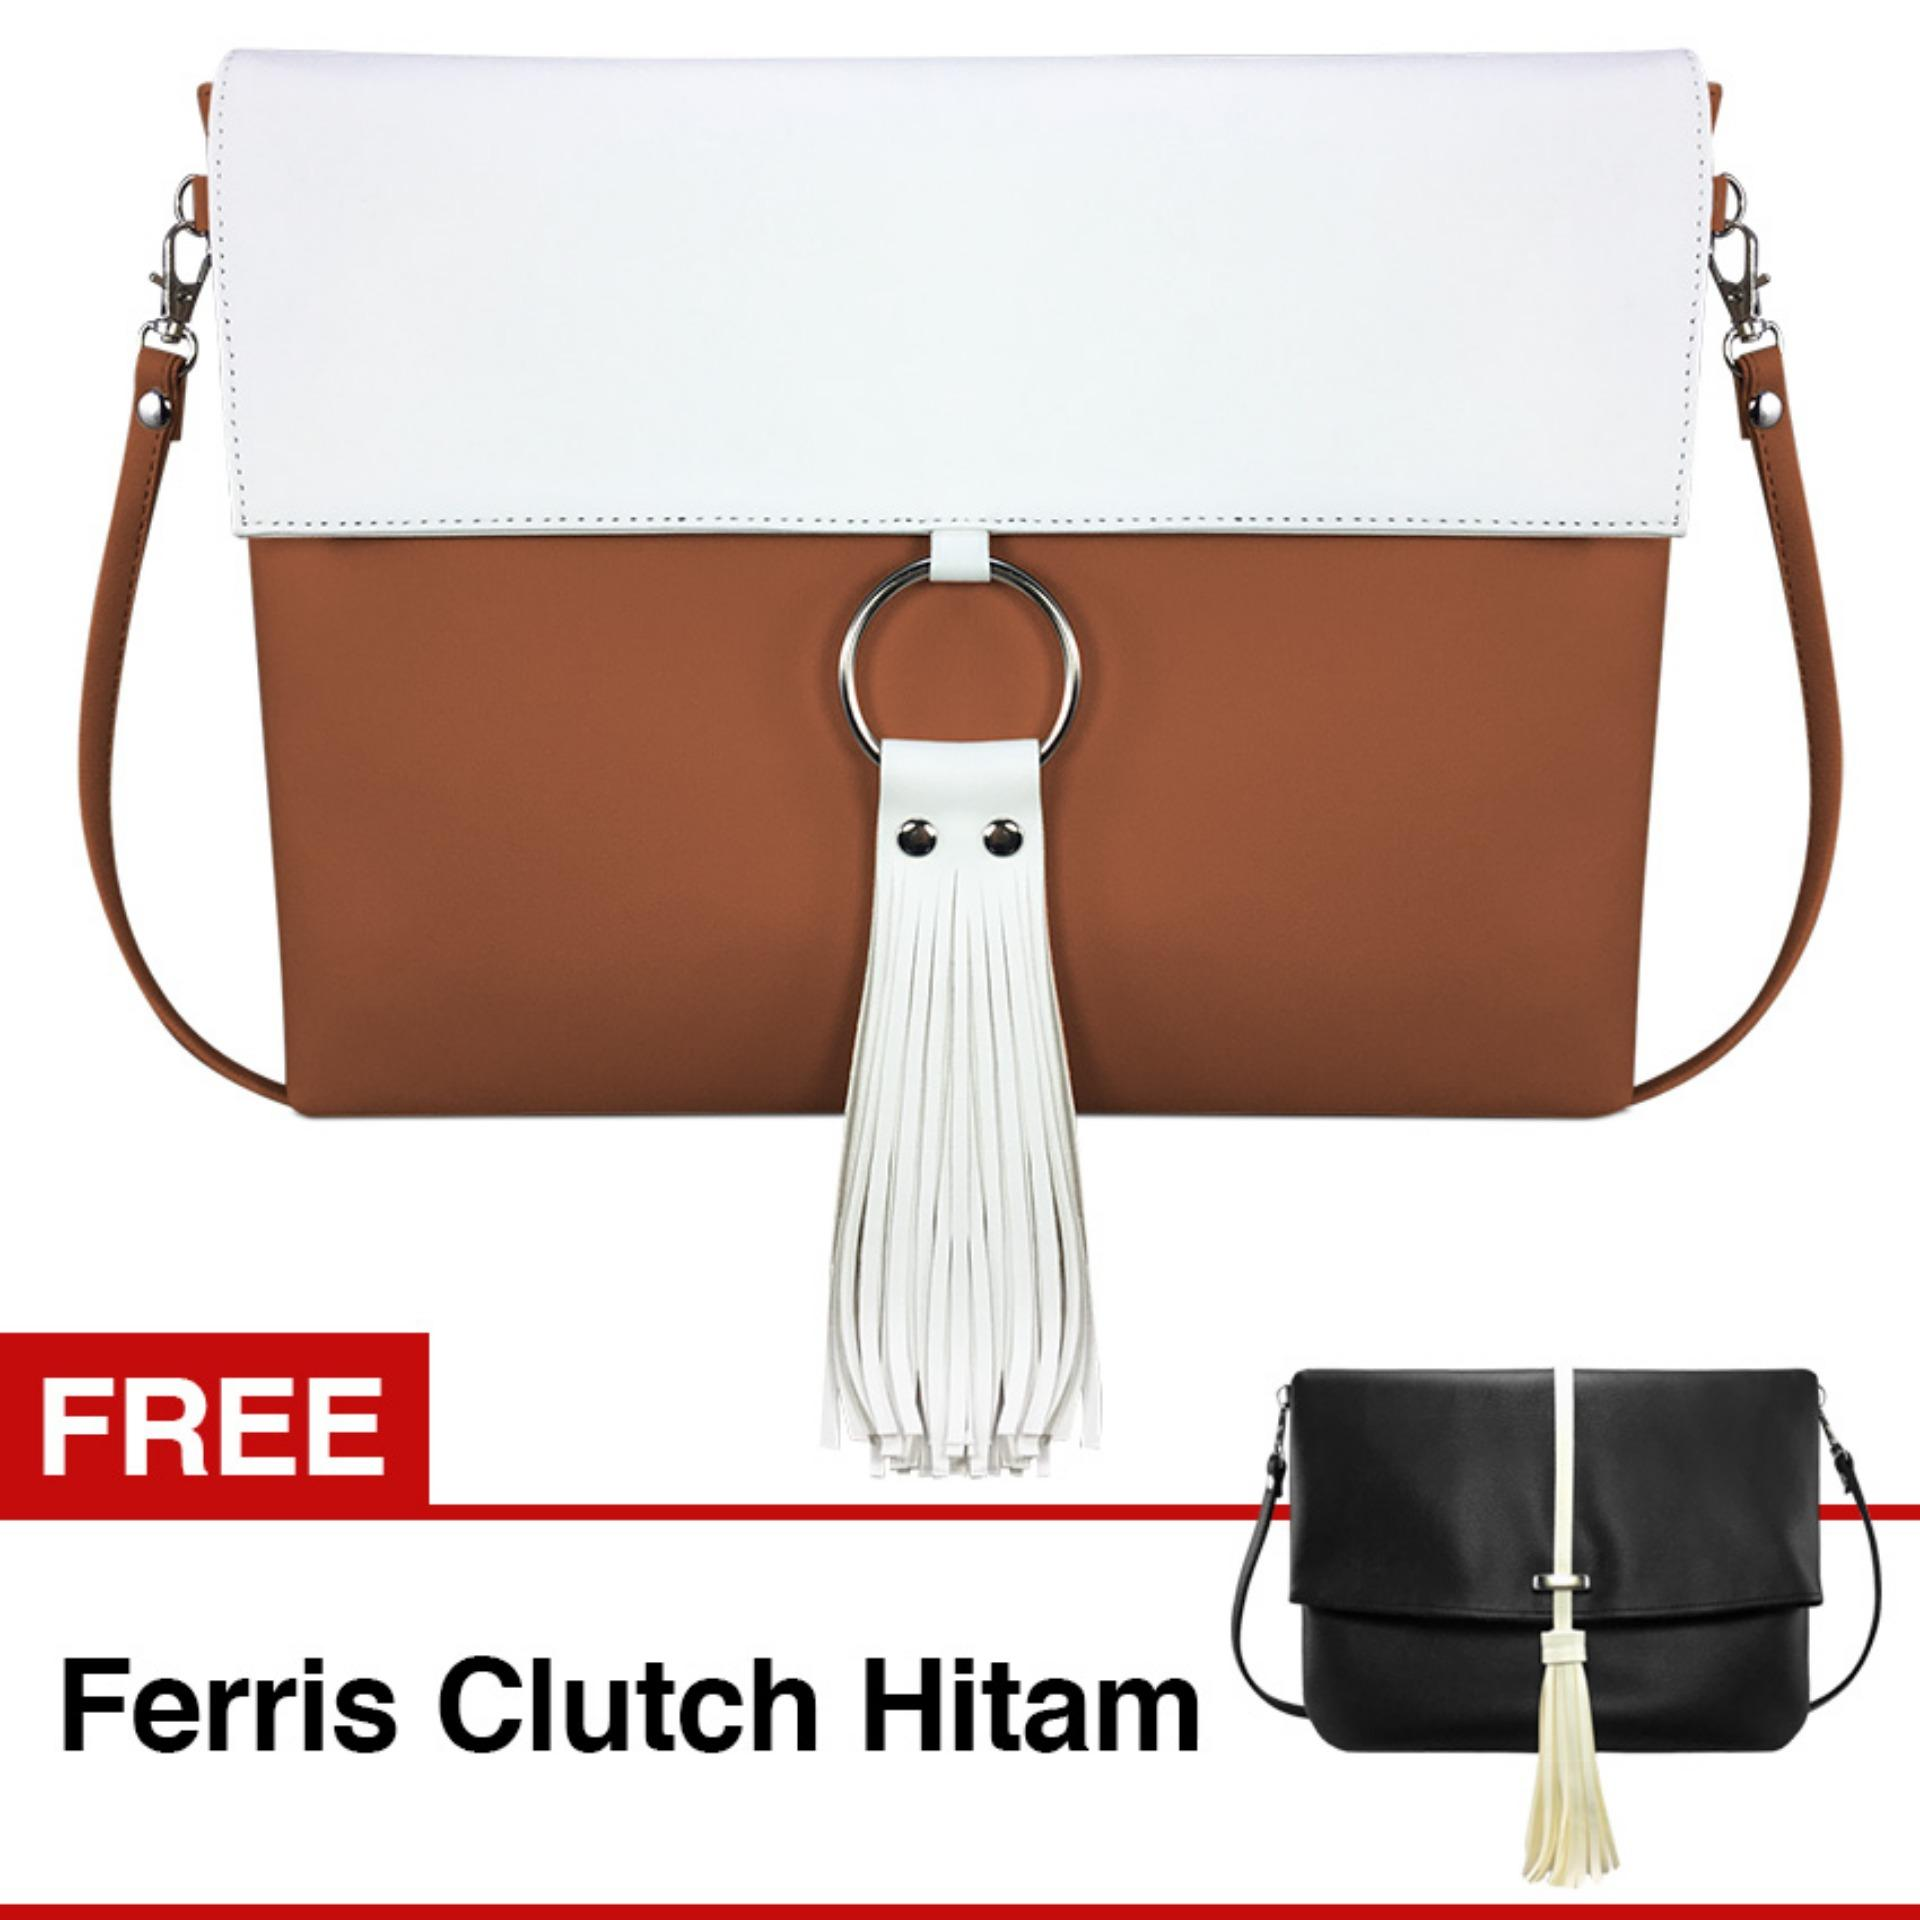 Harga Vona Robin Gratis Free Ferris Hitam Paket 2 In 1 Tas Wanita Selempang Tangan Shoulder Bag Handbag Sling Crossbody Tote Dompet Slingbag Purse Clutch Faux Pu Leather Kulit Sintetis Tali Panjang Best Seller Terbaru New Branded Fashion Korean Style Yg Bagus